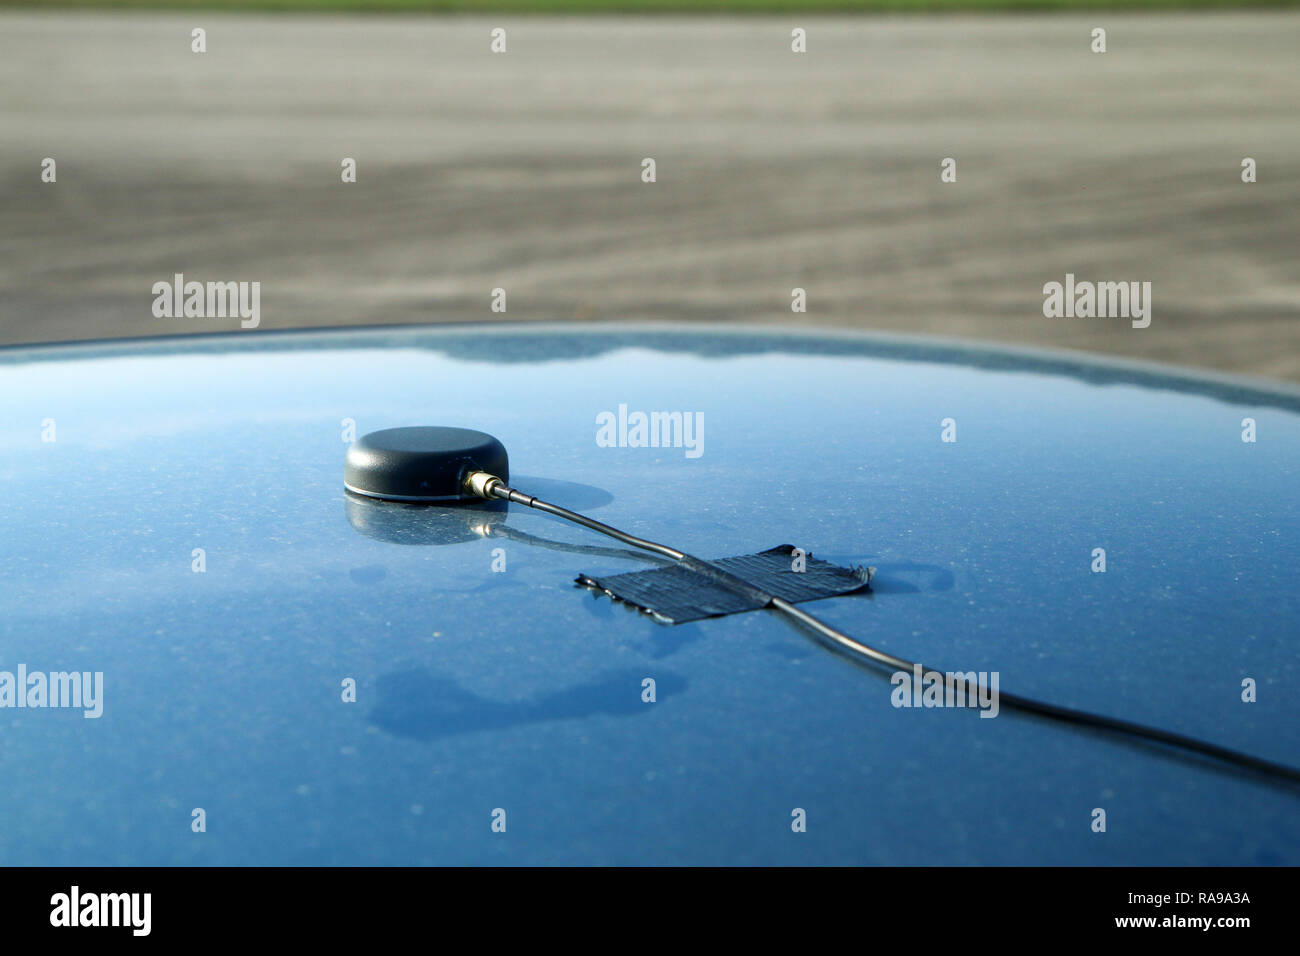 A detail of a gps antenna placed on the roof of a vehicle. Used for the precise measurement of vehicle´s position. - Stock Image